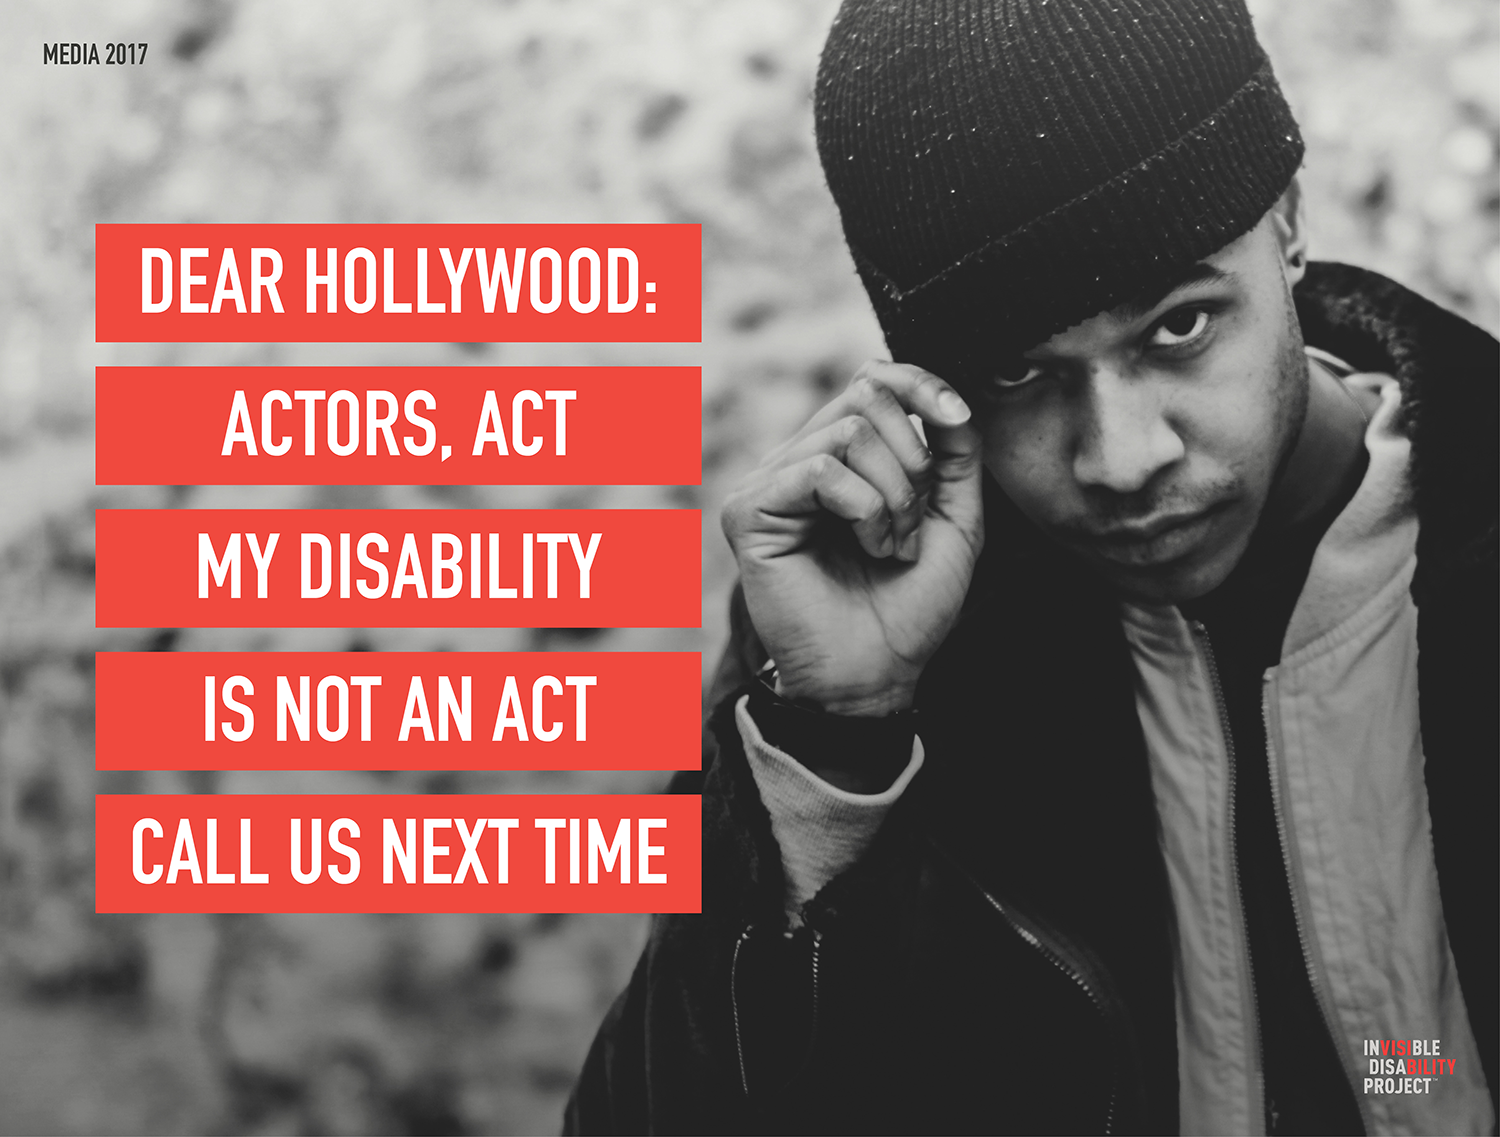 Dear Hollywood. Actors act. My Disability is not an act. Call us next time.